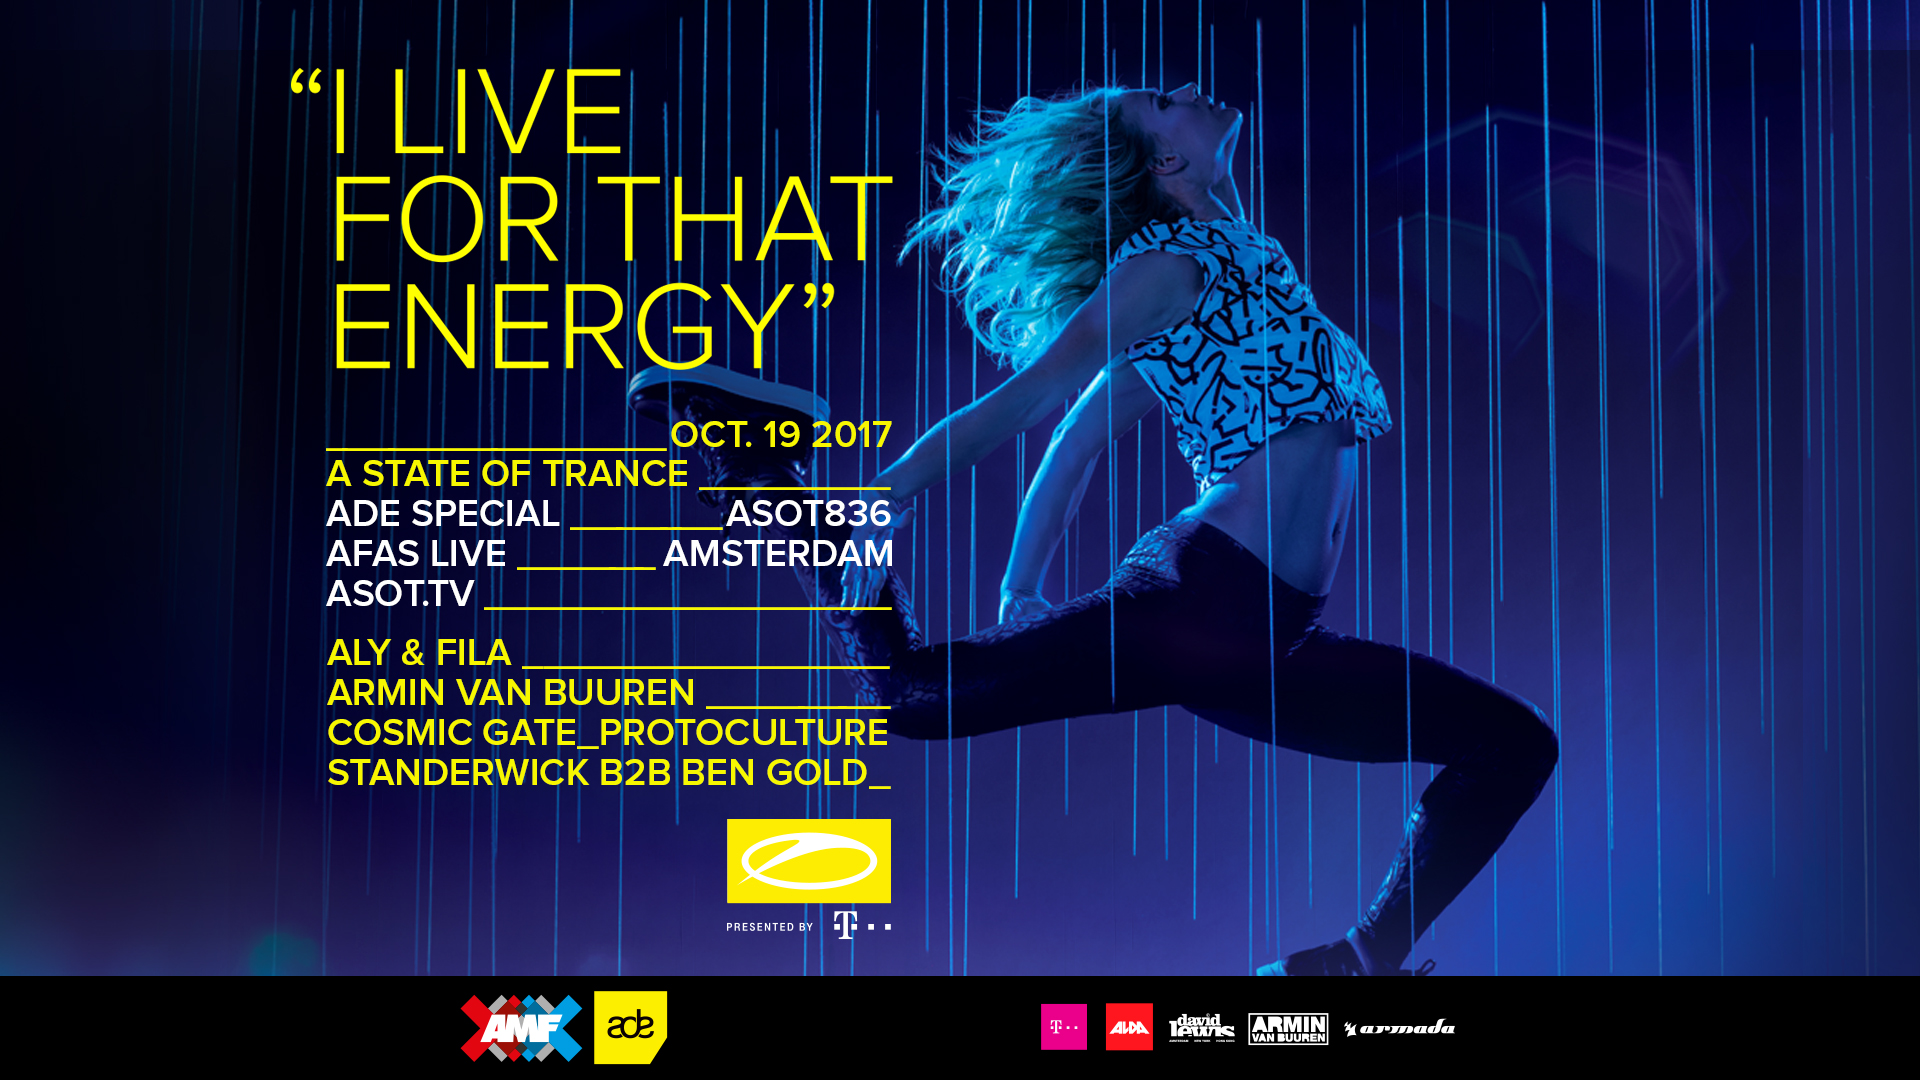 19.10.2017 A State Of Trance - ADE Special, Amsterdam